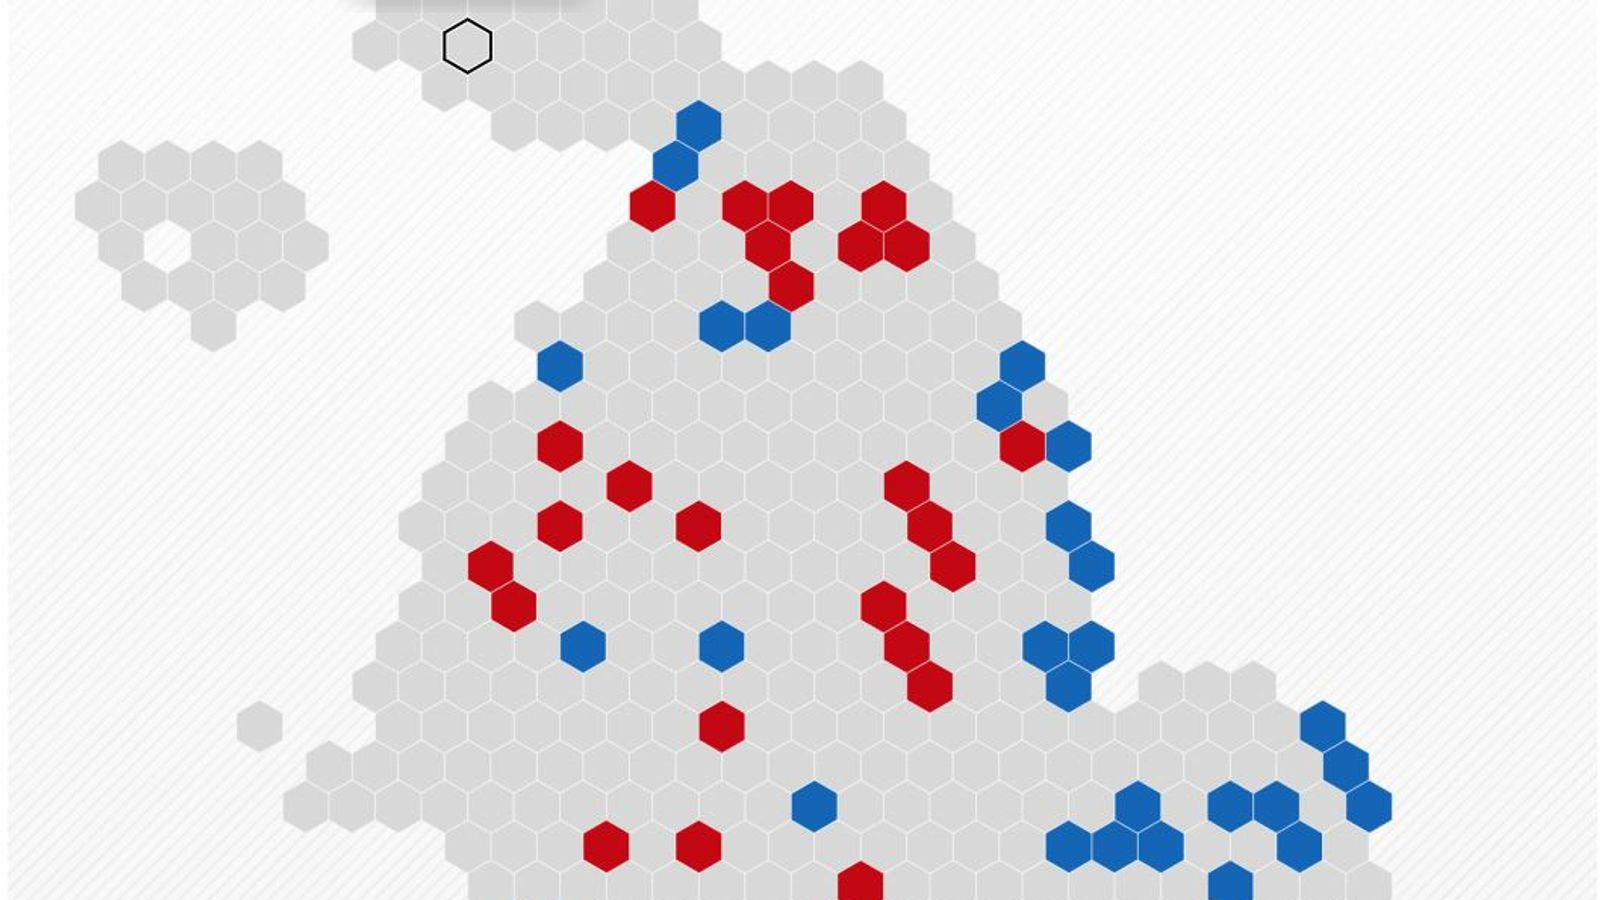 bradford west constituency betting trends